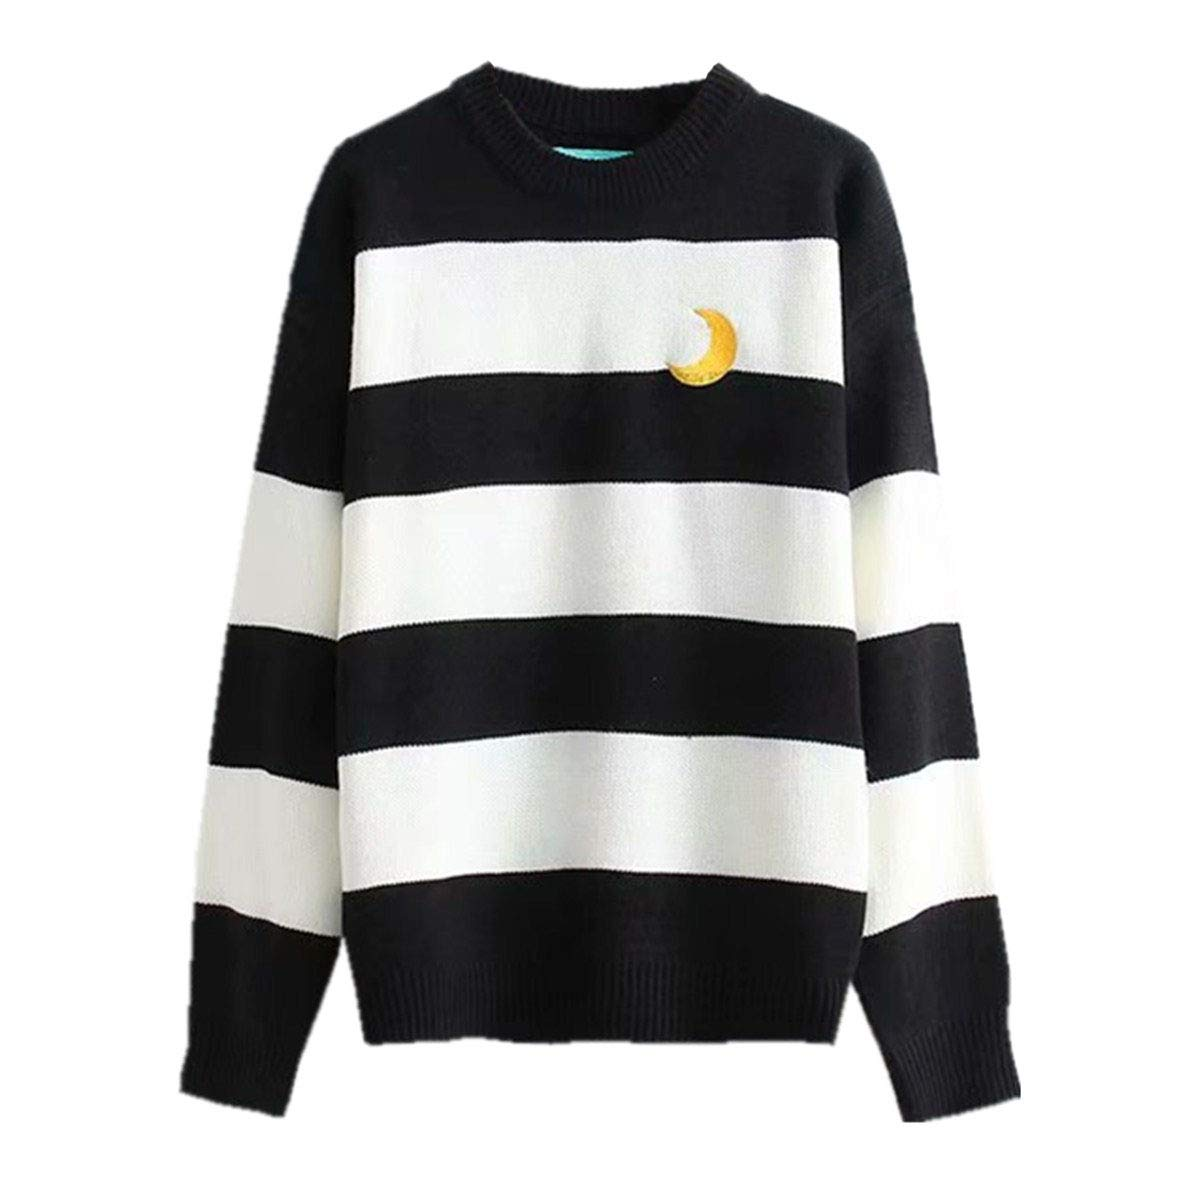 Packitcute Striped Knitted Sweater, Long Sleeve Moon Embroidery Cute  Sweaters for Women